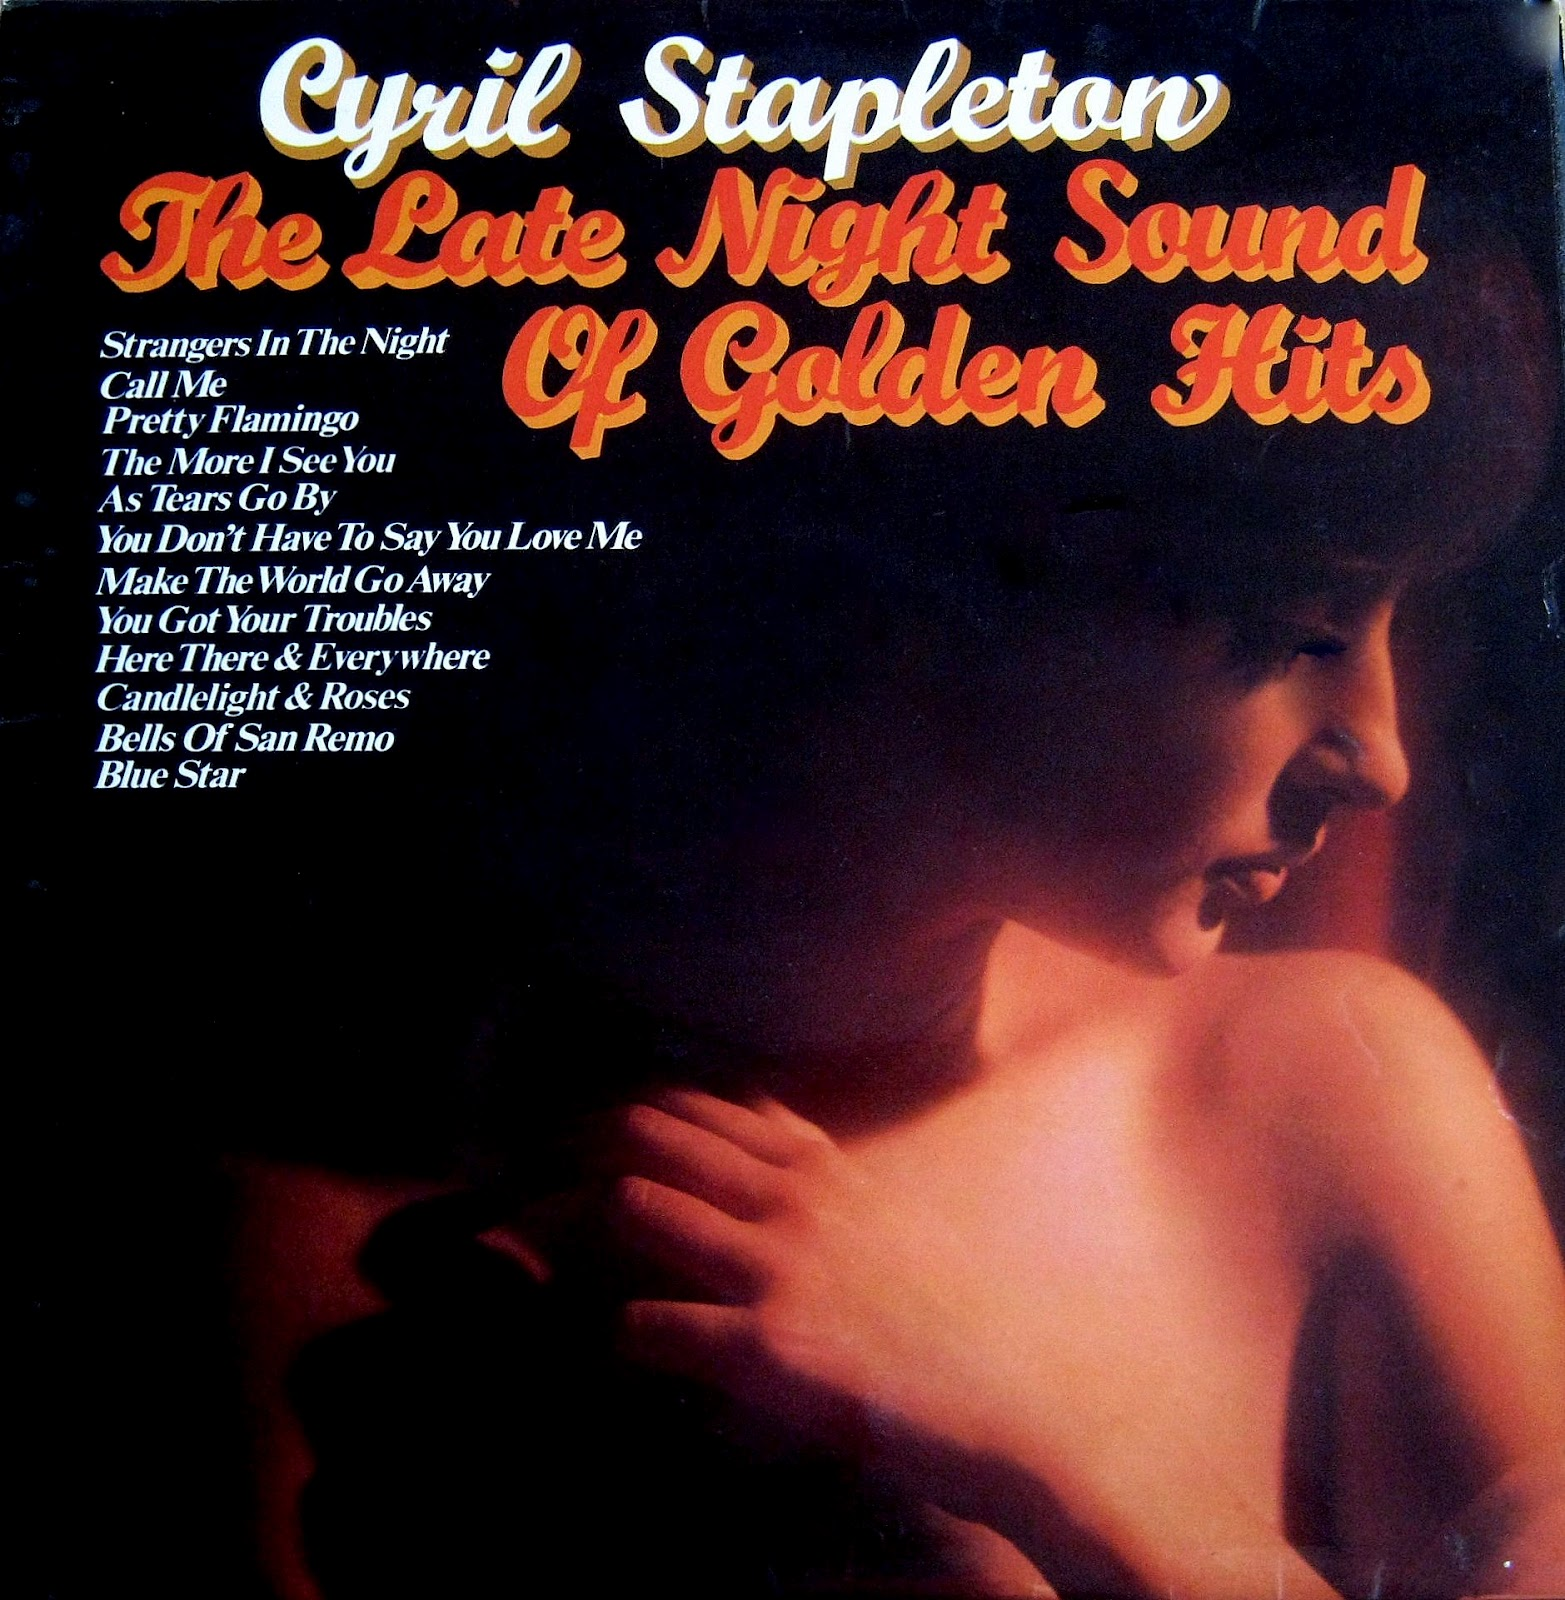 The Cyril Stapleton Orchestra Cyril Stapleton And His Orchestra Blue Star